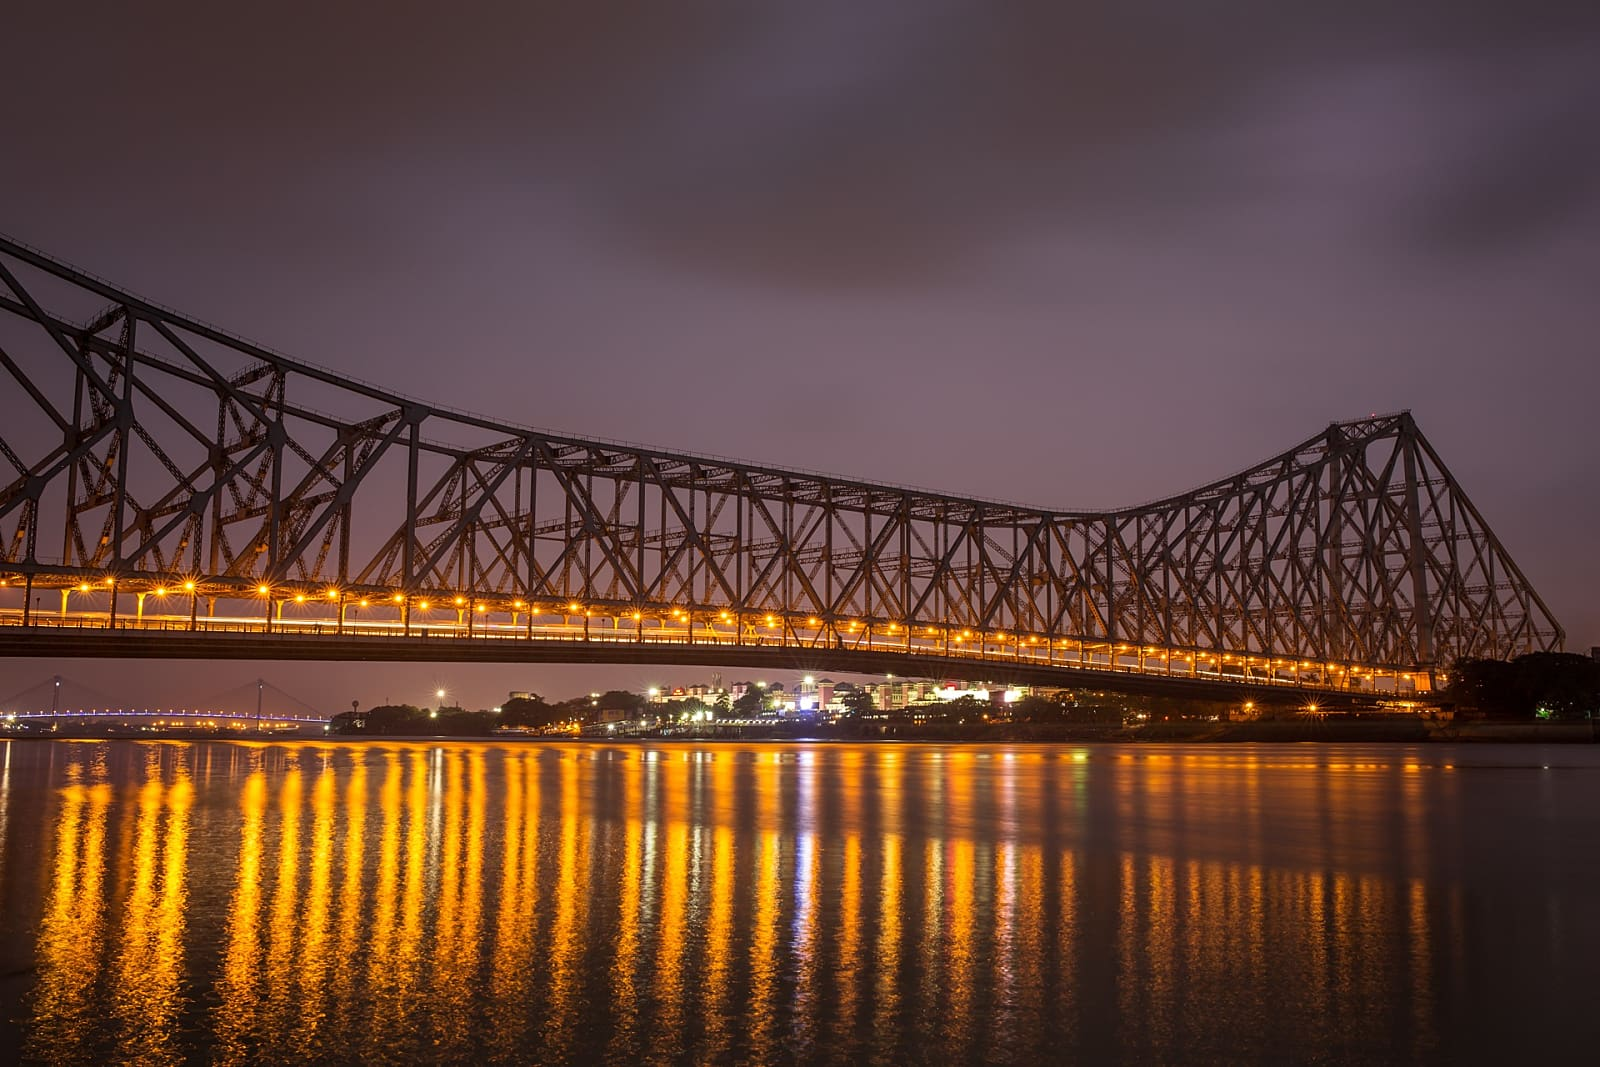 PunjabKesari, Nari, Howrah Bridge, Travel Place Image